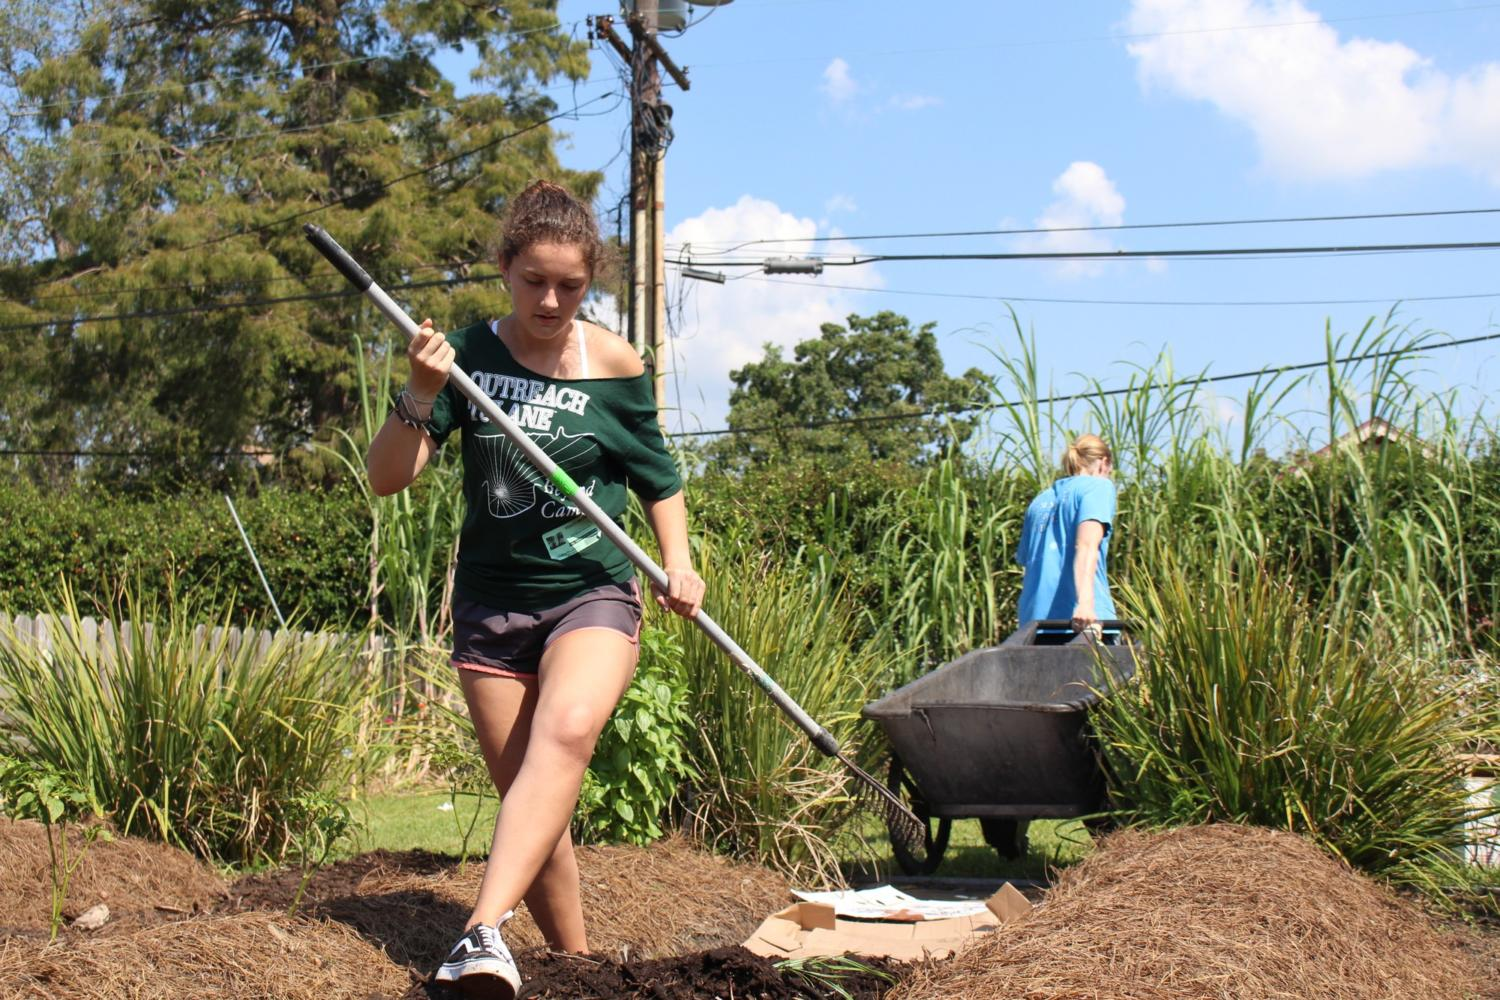 Renata Massion, Tulane University junior majoring in political economy and international development, spreads mulch between rows of crops at Samuel J. Green Charter School's garden in uptown New Orleans. Massion works at the site through a partnership with Edible Schoolyard New Orleans, a non-profit aimed at encouraging children to make healthy connections between food and school. Photo credit: India Yarborough